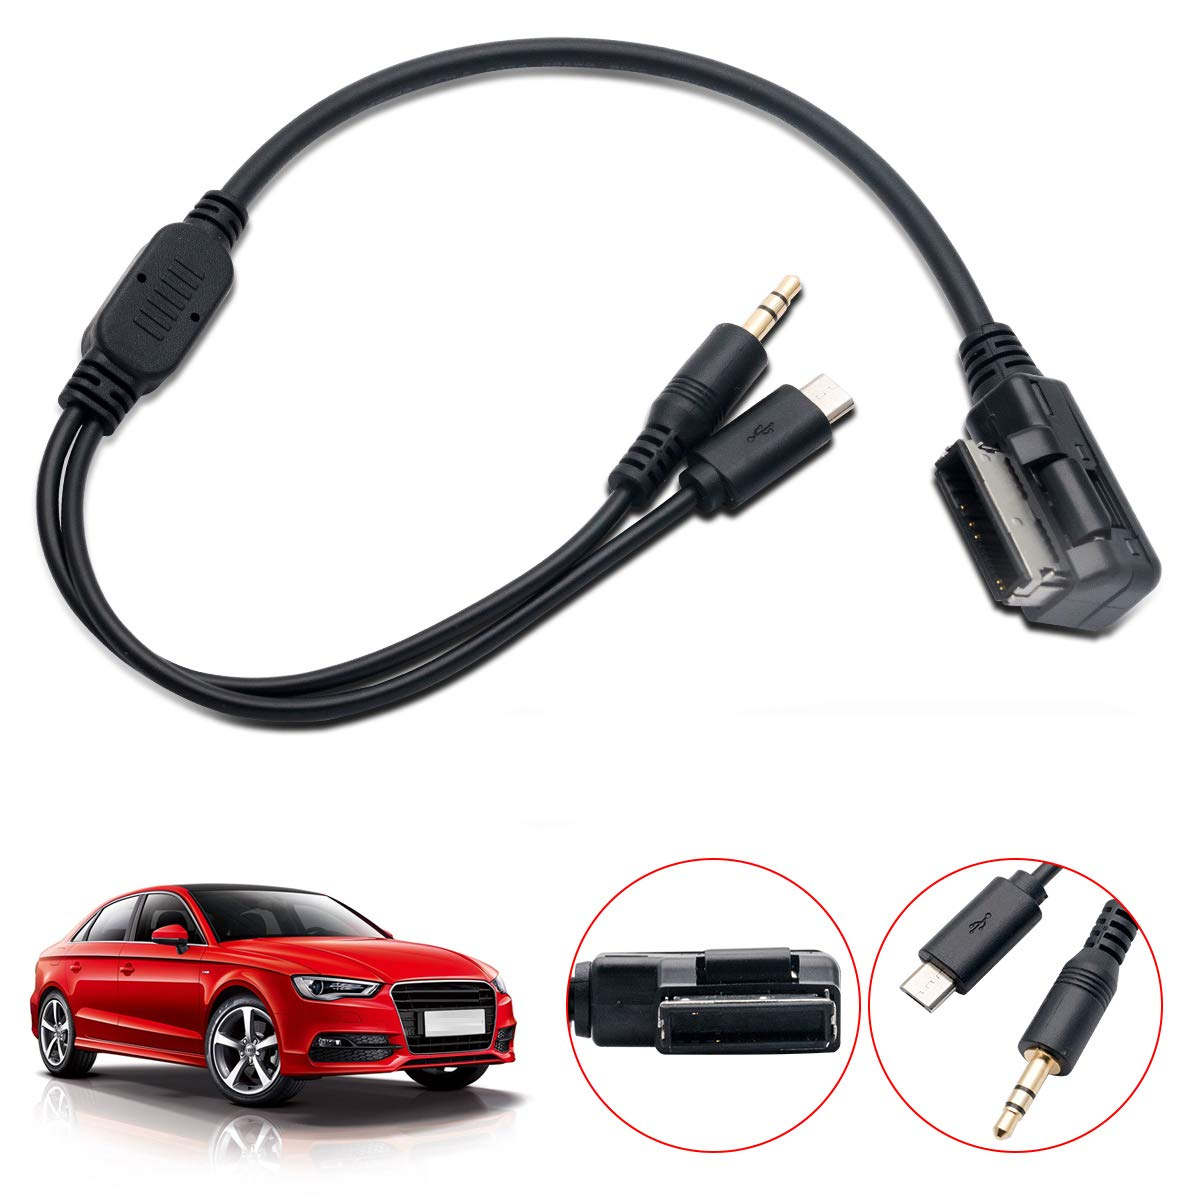 APS US SHIPPING Audio cable for Audi Q3 Q5 Q7 Ami Connector Charging for iPhone6